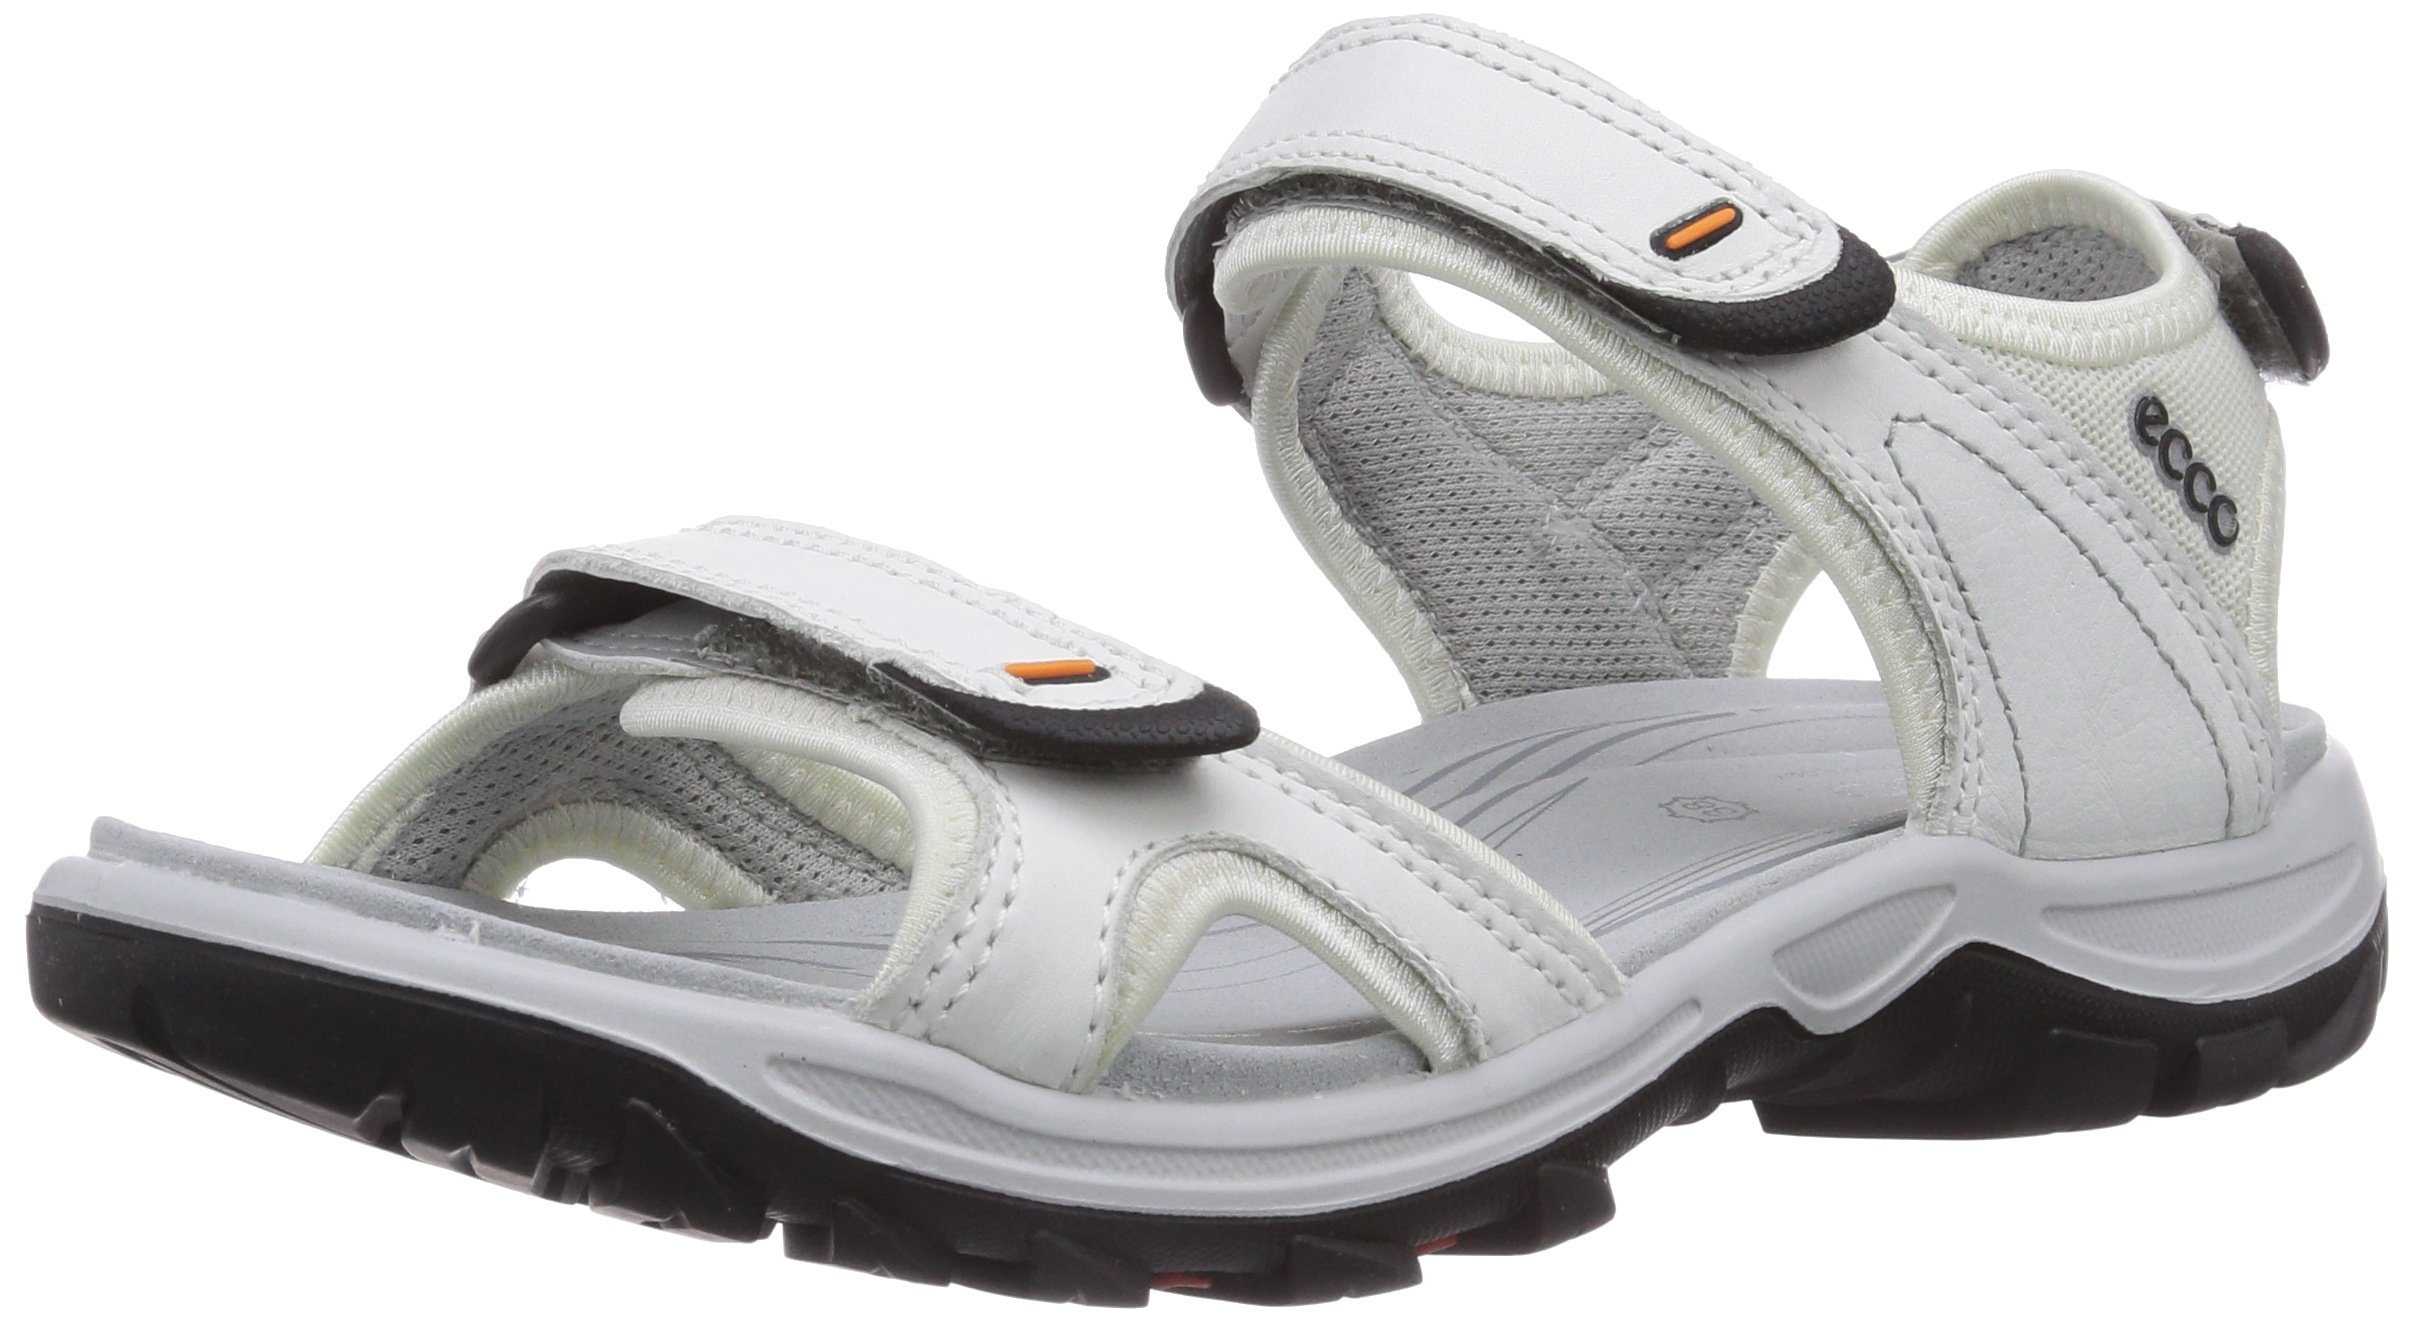 ECCO Women's Offroad Lite Rainer Sandal Outdoor Sandal, White/Shadow White, 42 EU/11-11.5 M US